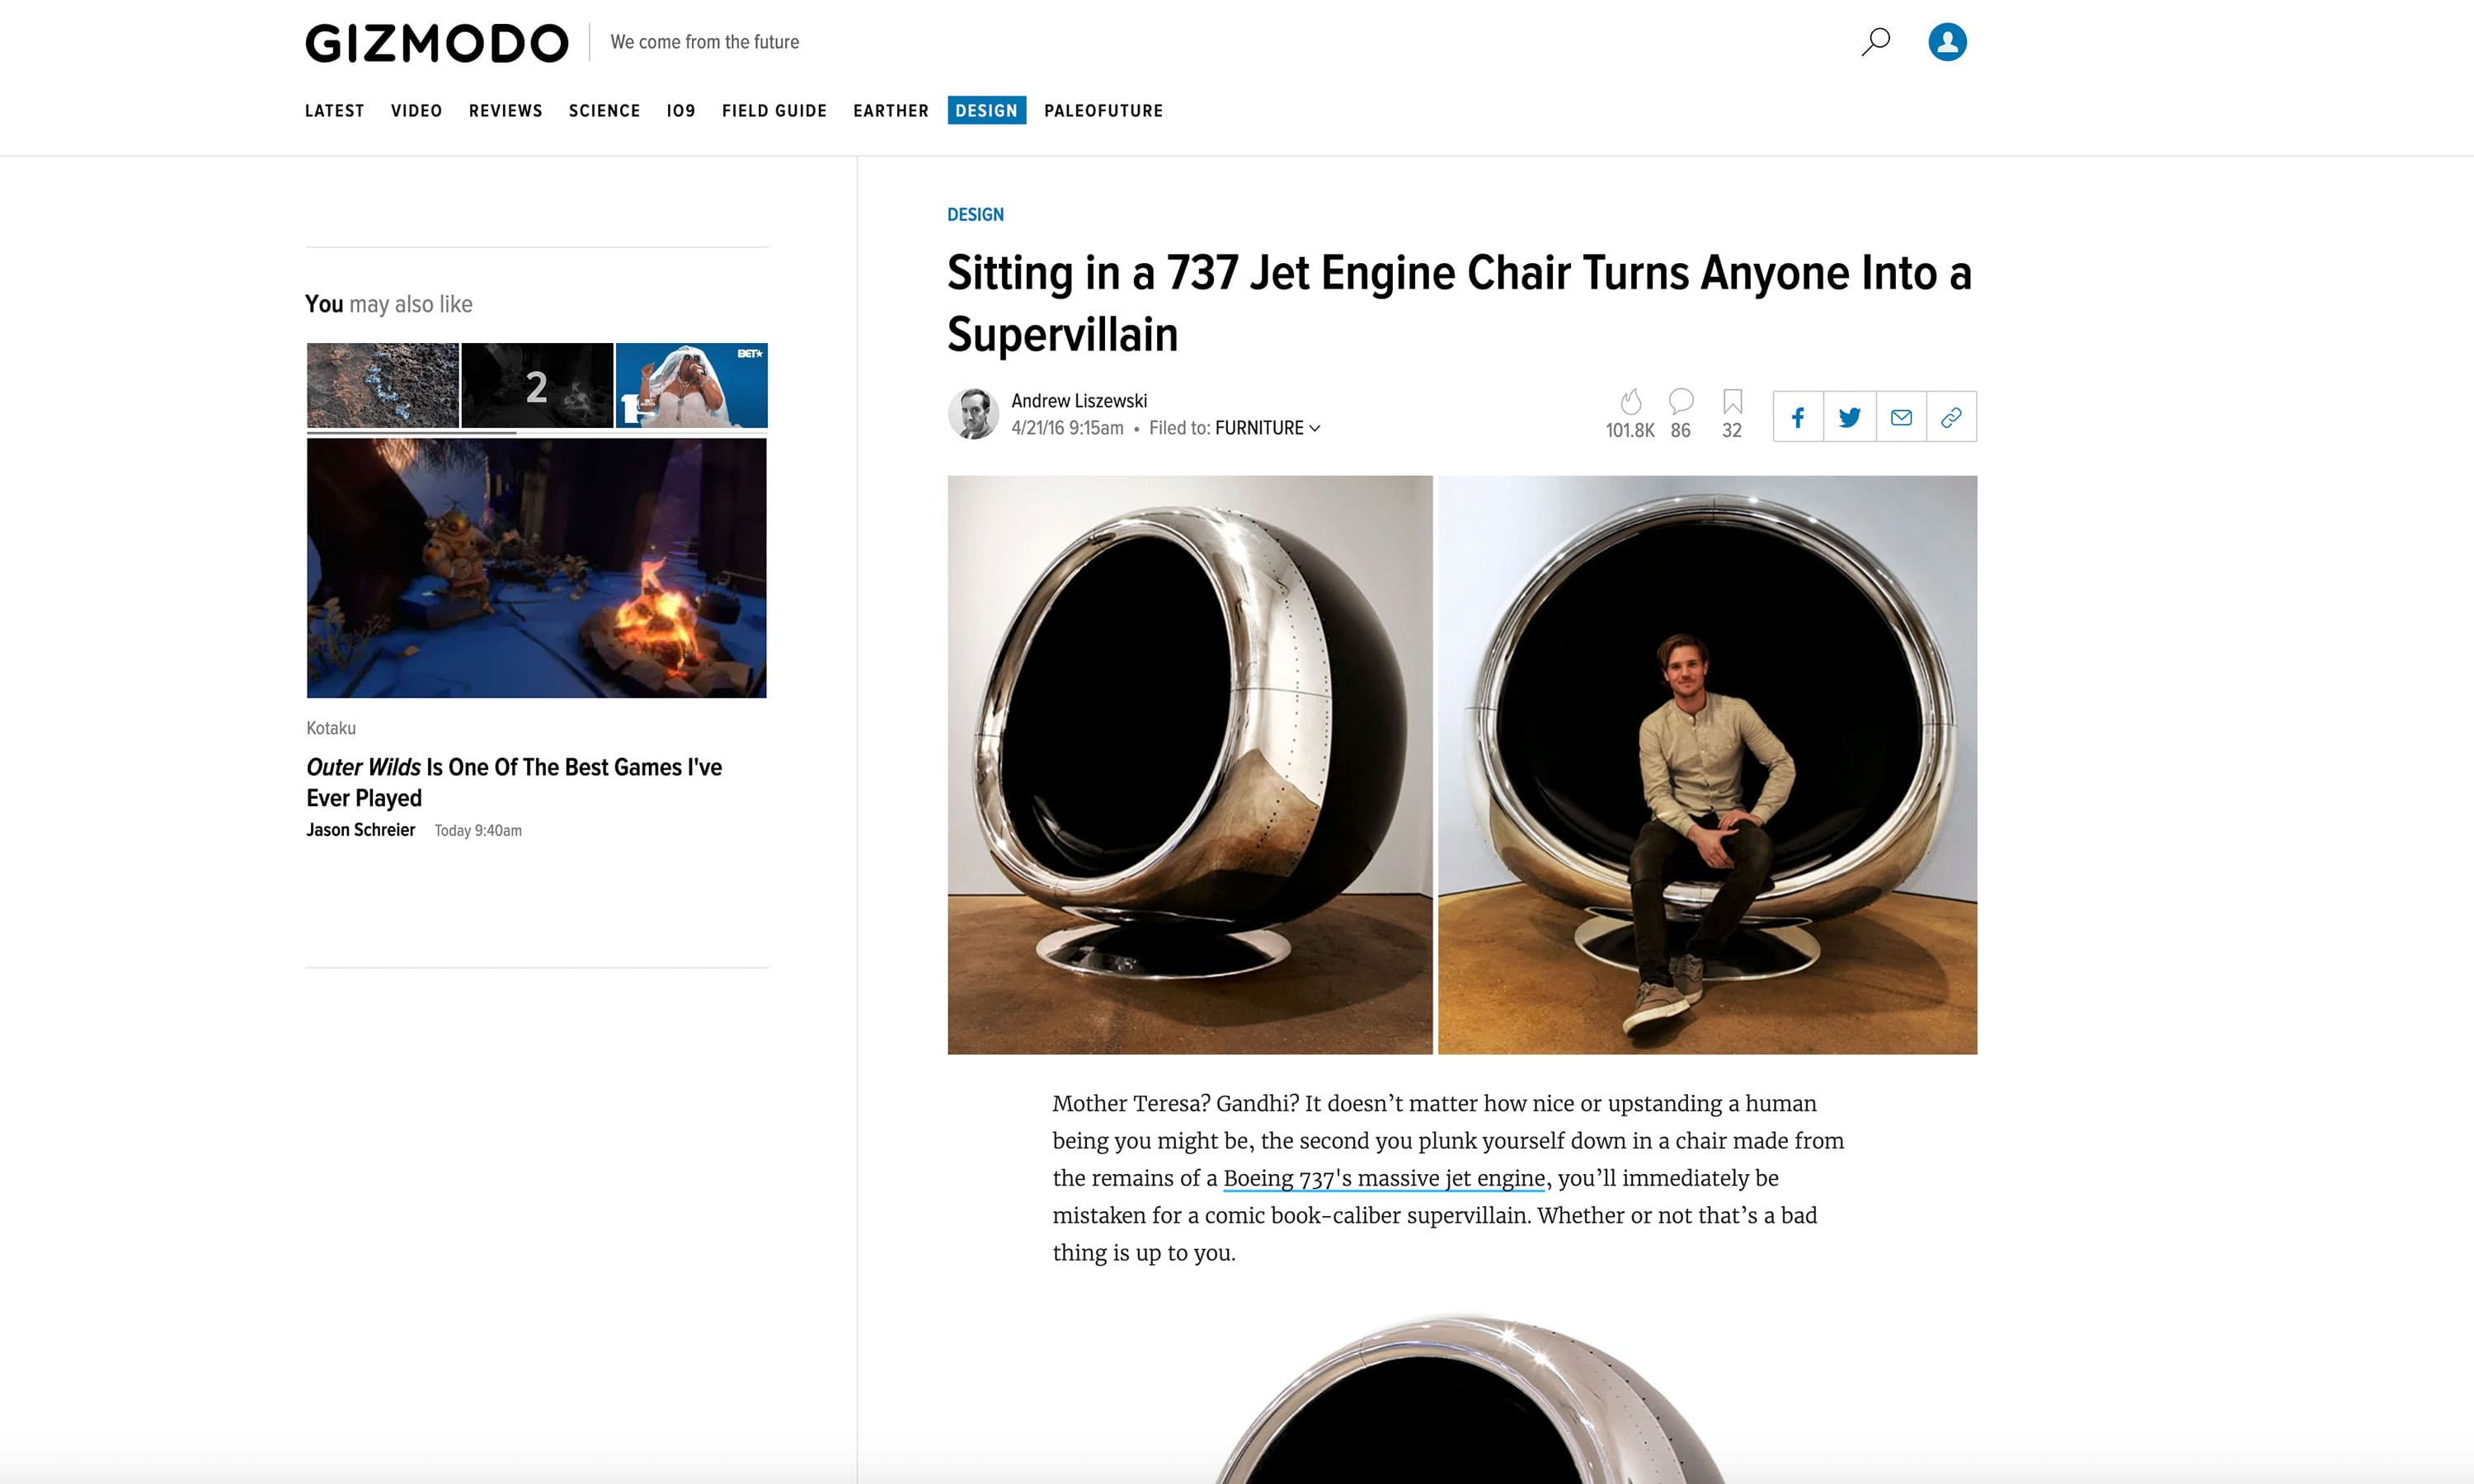 Gizmodo Boeing 737 Cowling Chair